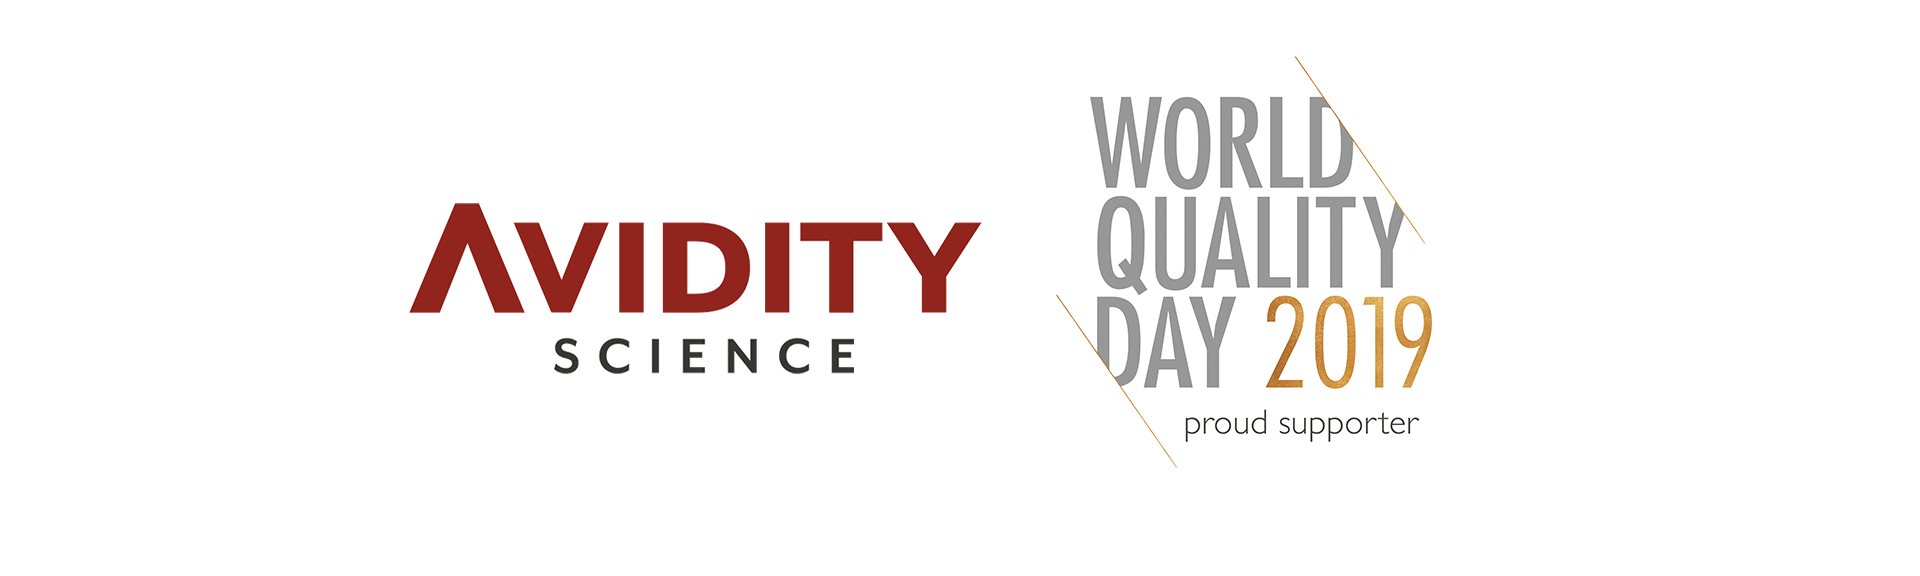 Every day is World Quality Day at Avidity Science